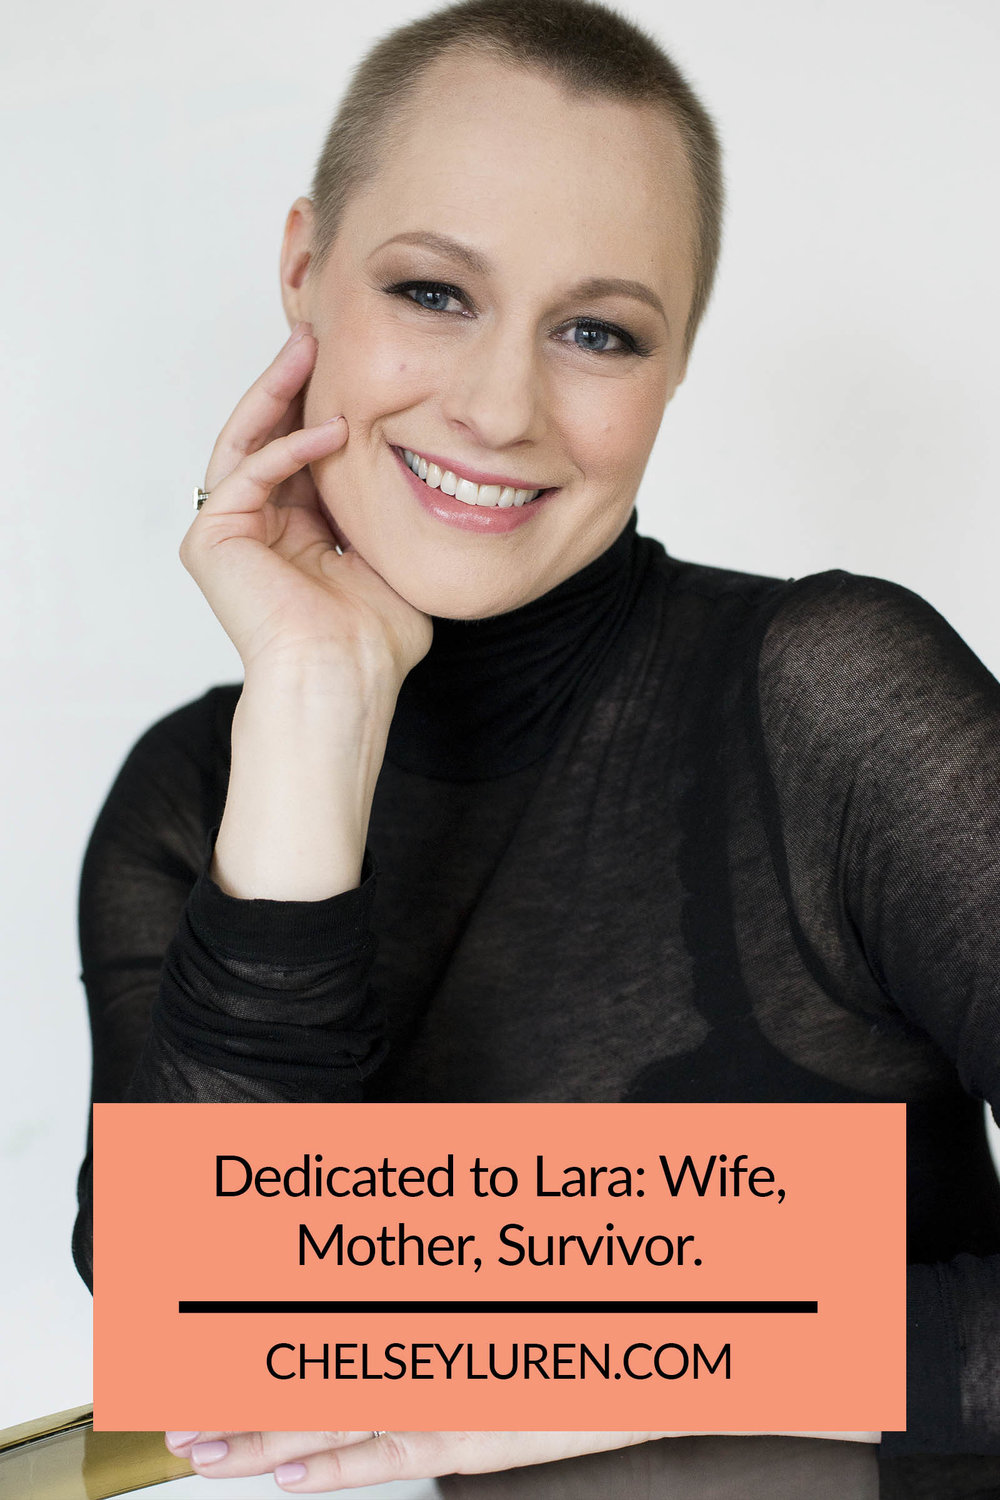 Chelsey Luren Portraits - Dedicated to Lara- Wife, Mother, Survivor.jpg